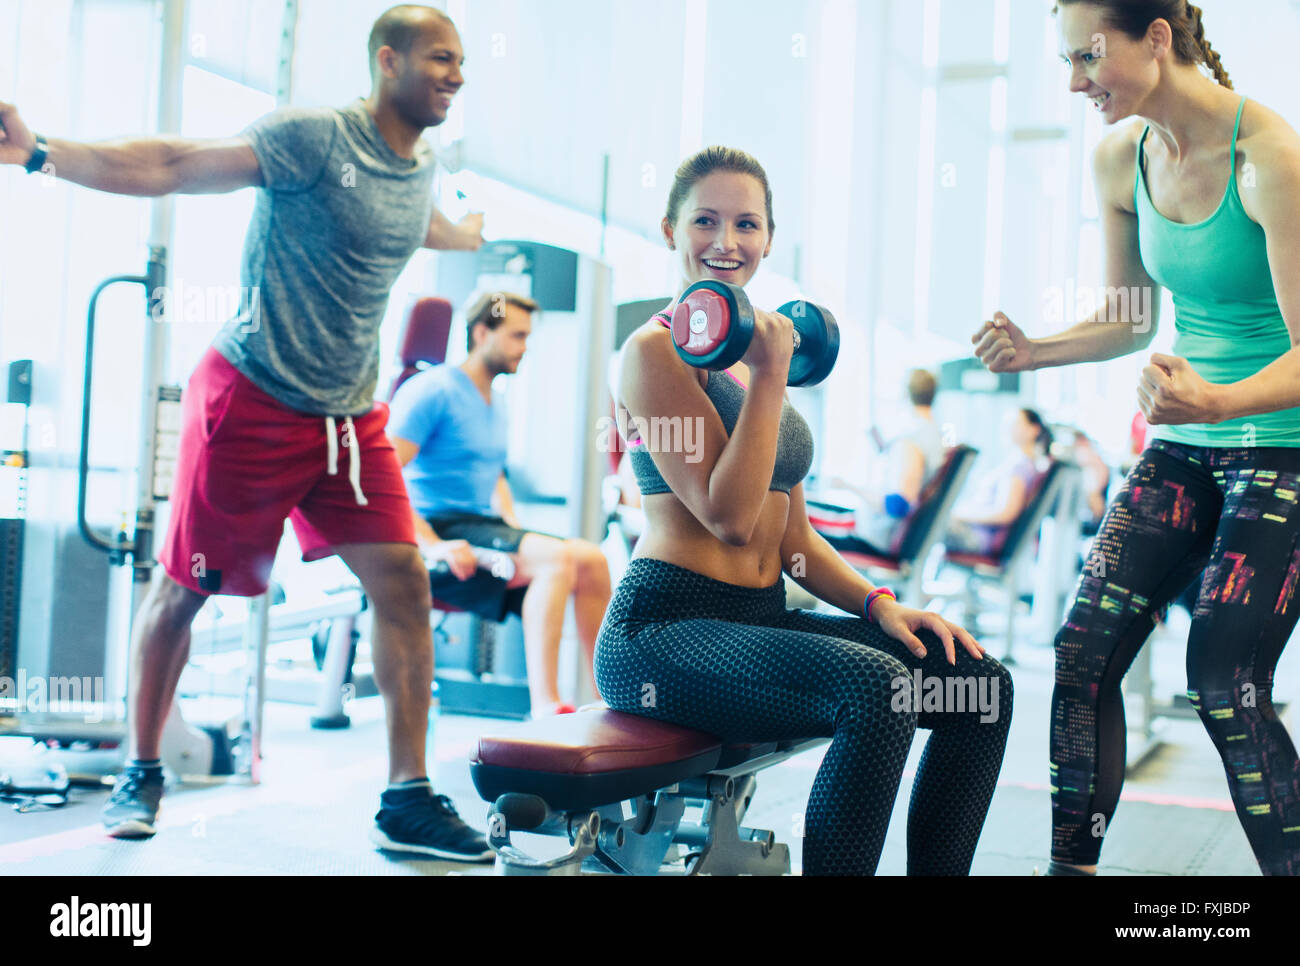 Woman cheering on friend doing dumbbell biceps curls at gym - Stock Image